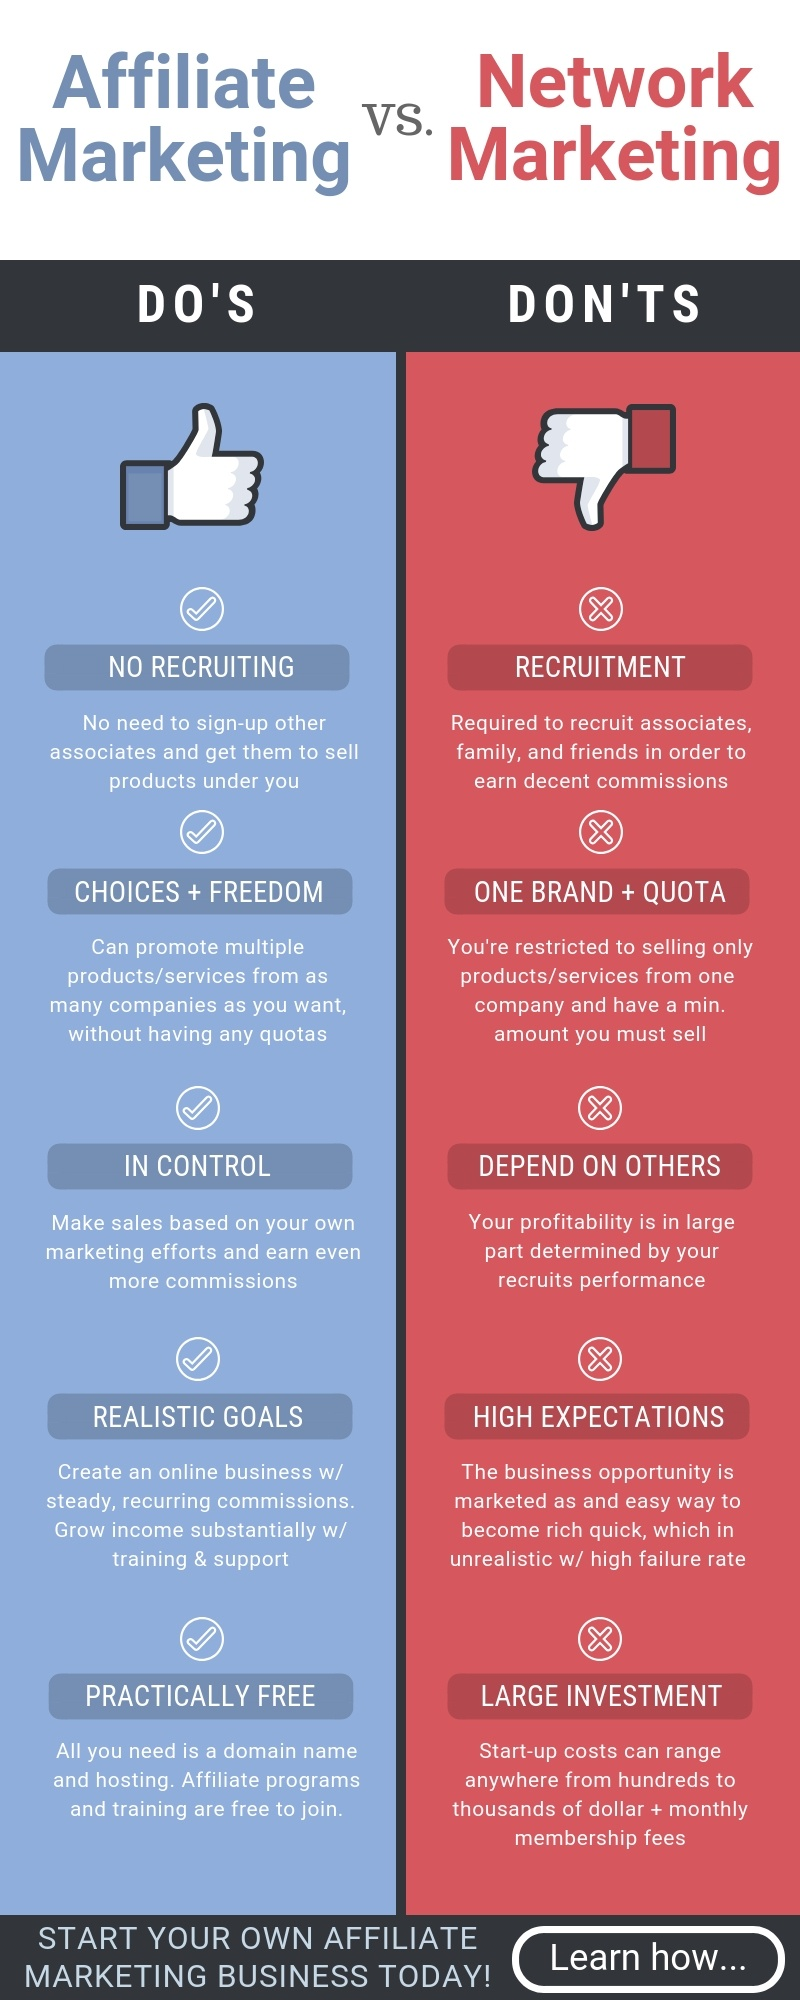 network marketing vs affiliate marketing pros & cons infographic